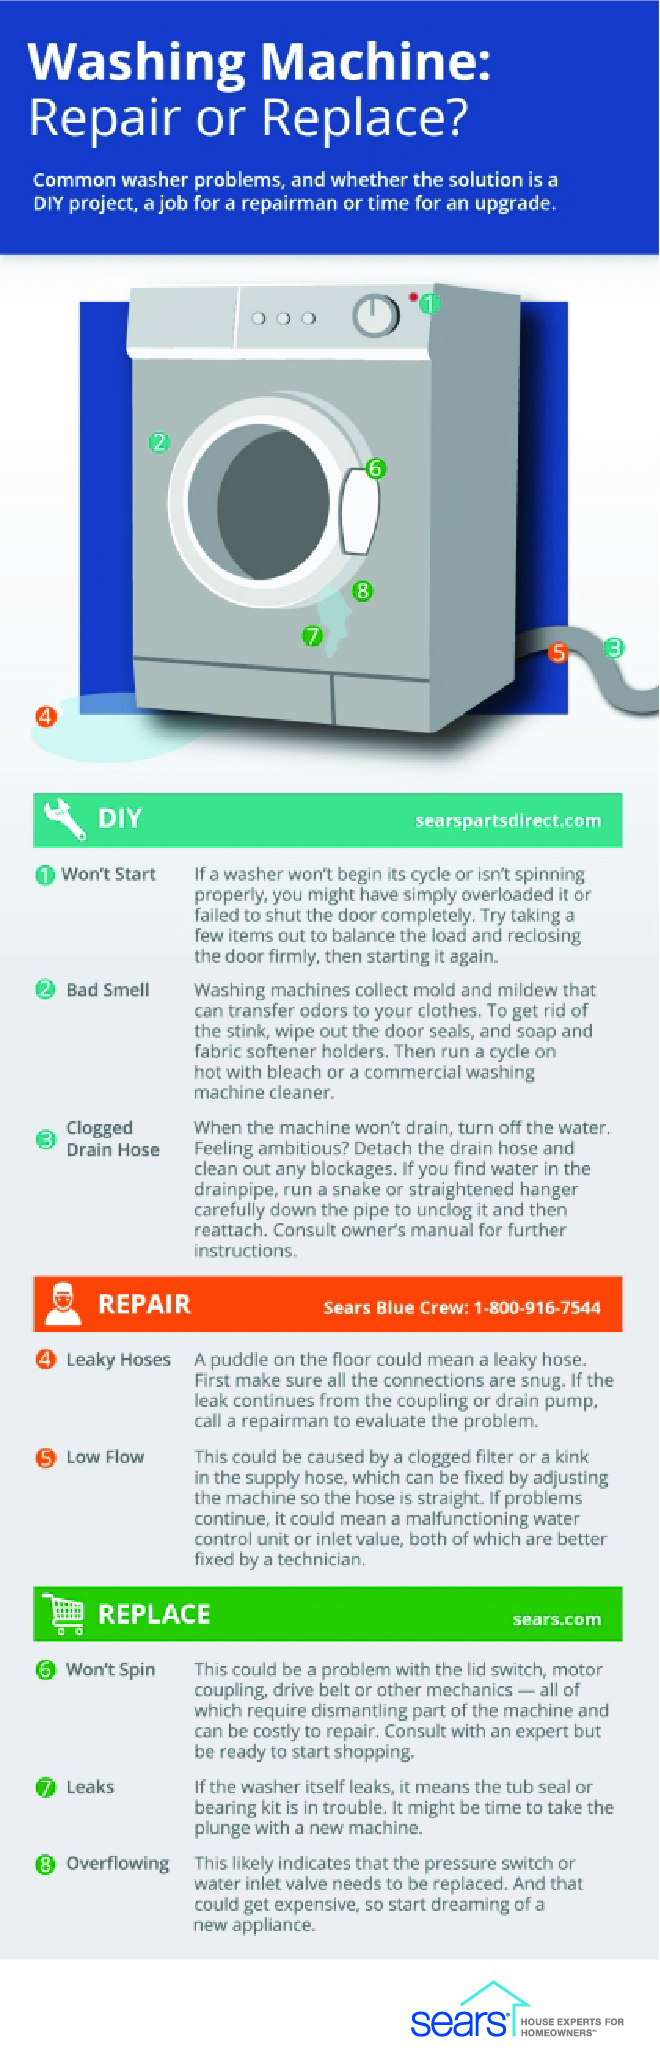 Common washing machine problems sears home services - Common washing machine problems ...